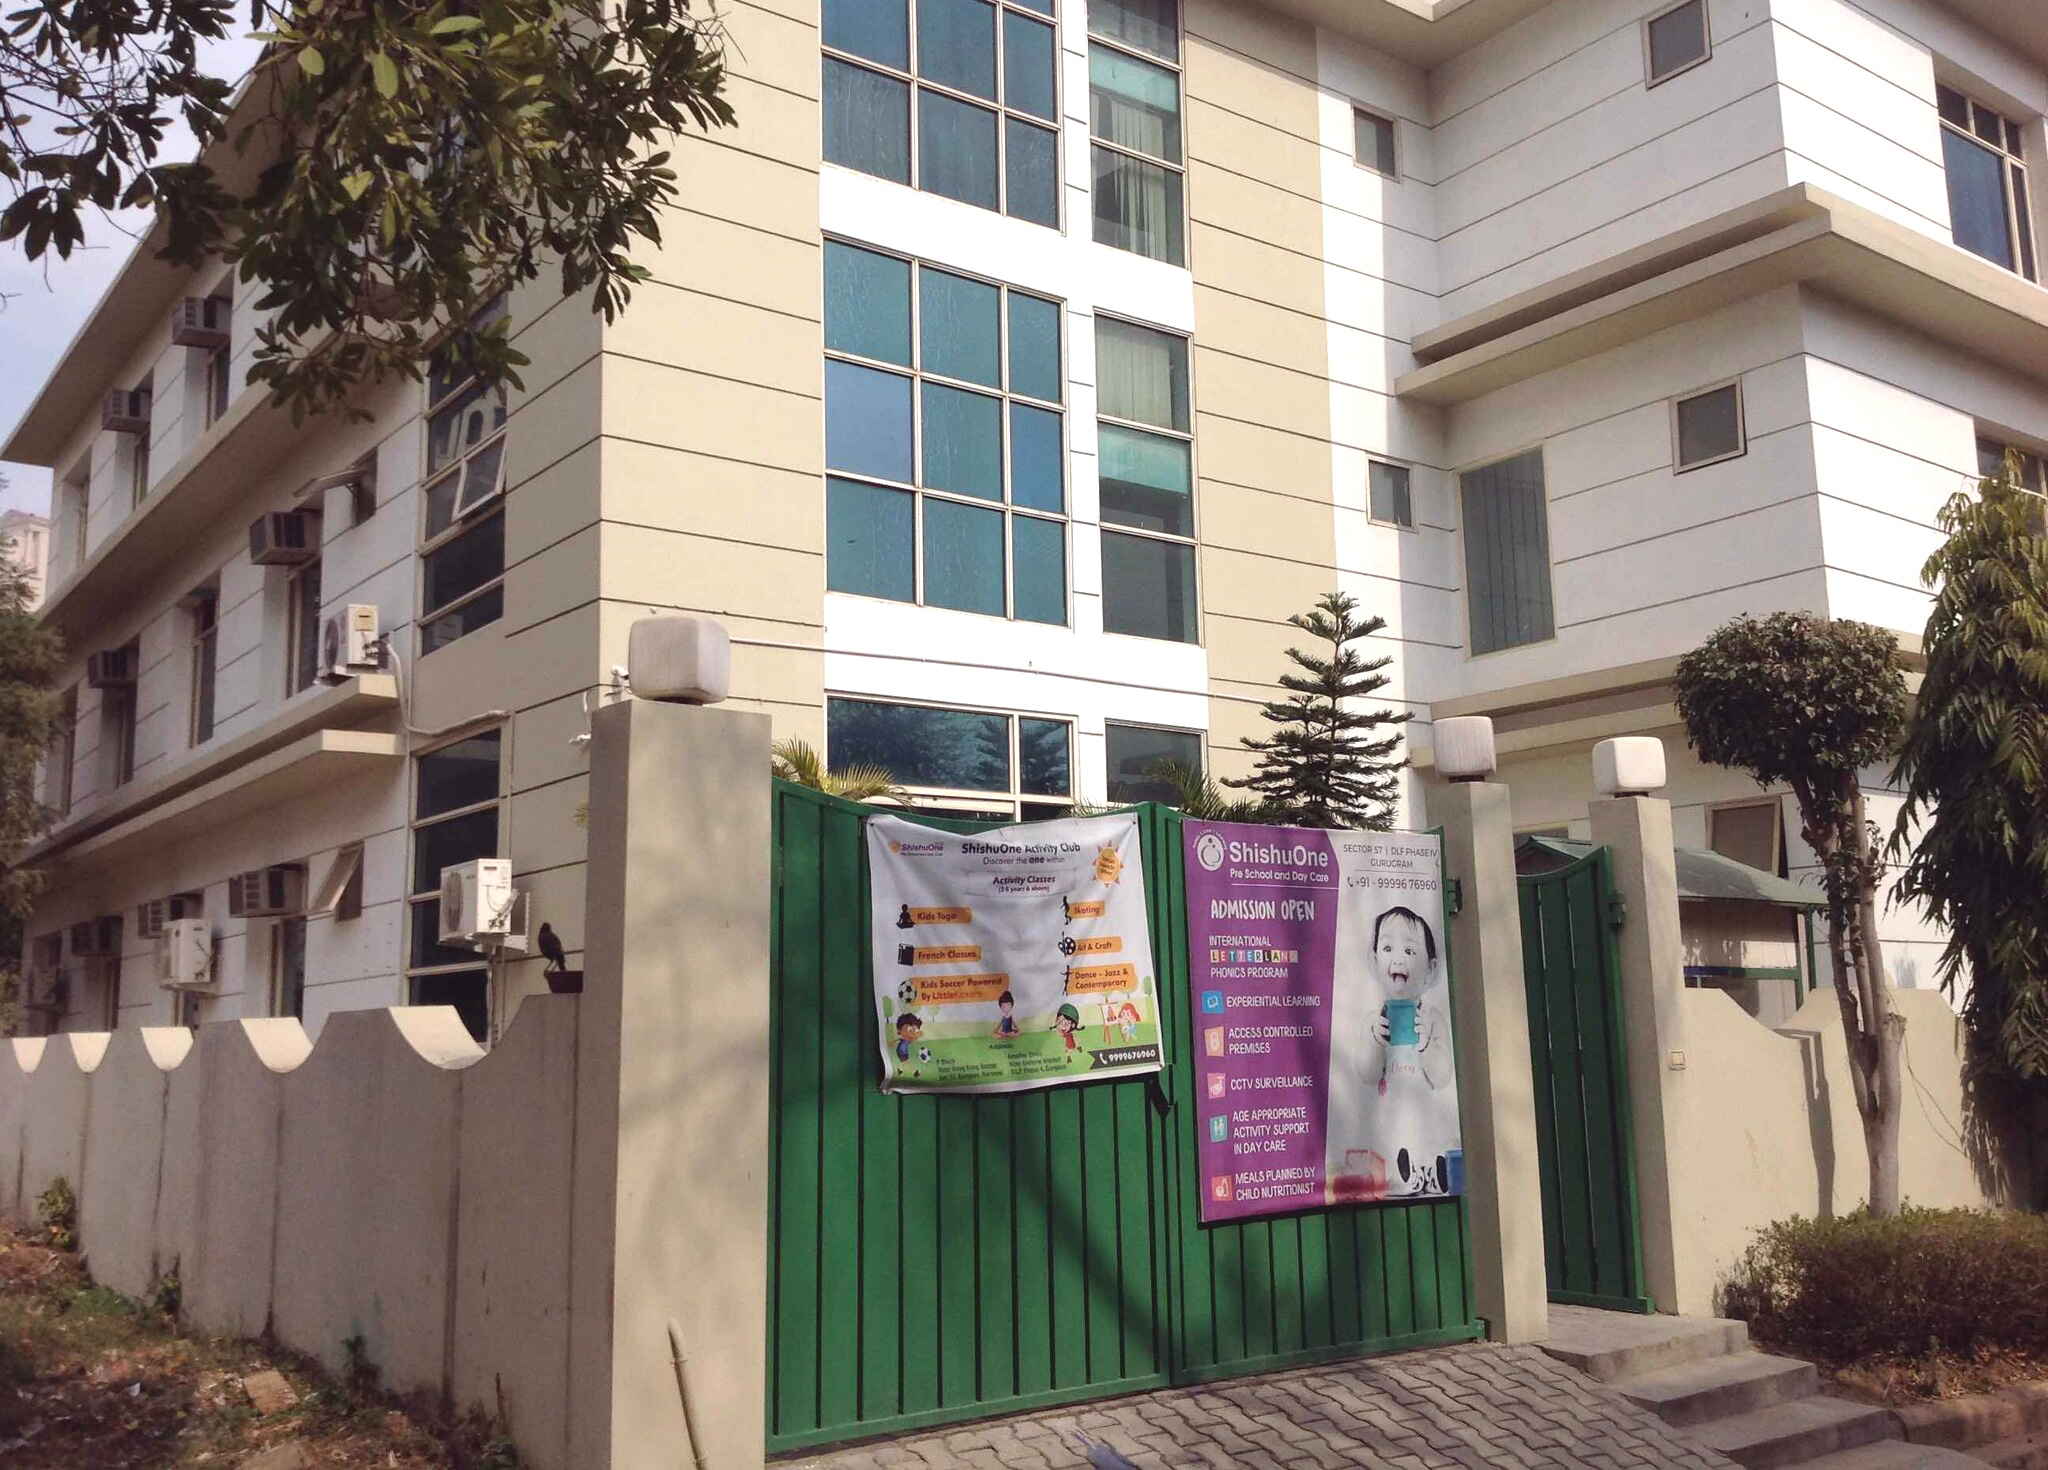 Playschool-Property-Leased-In-Gurgaon-To-ShishuOne-Pre-School